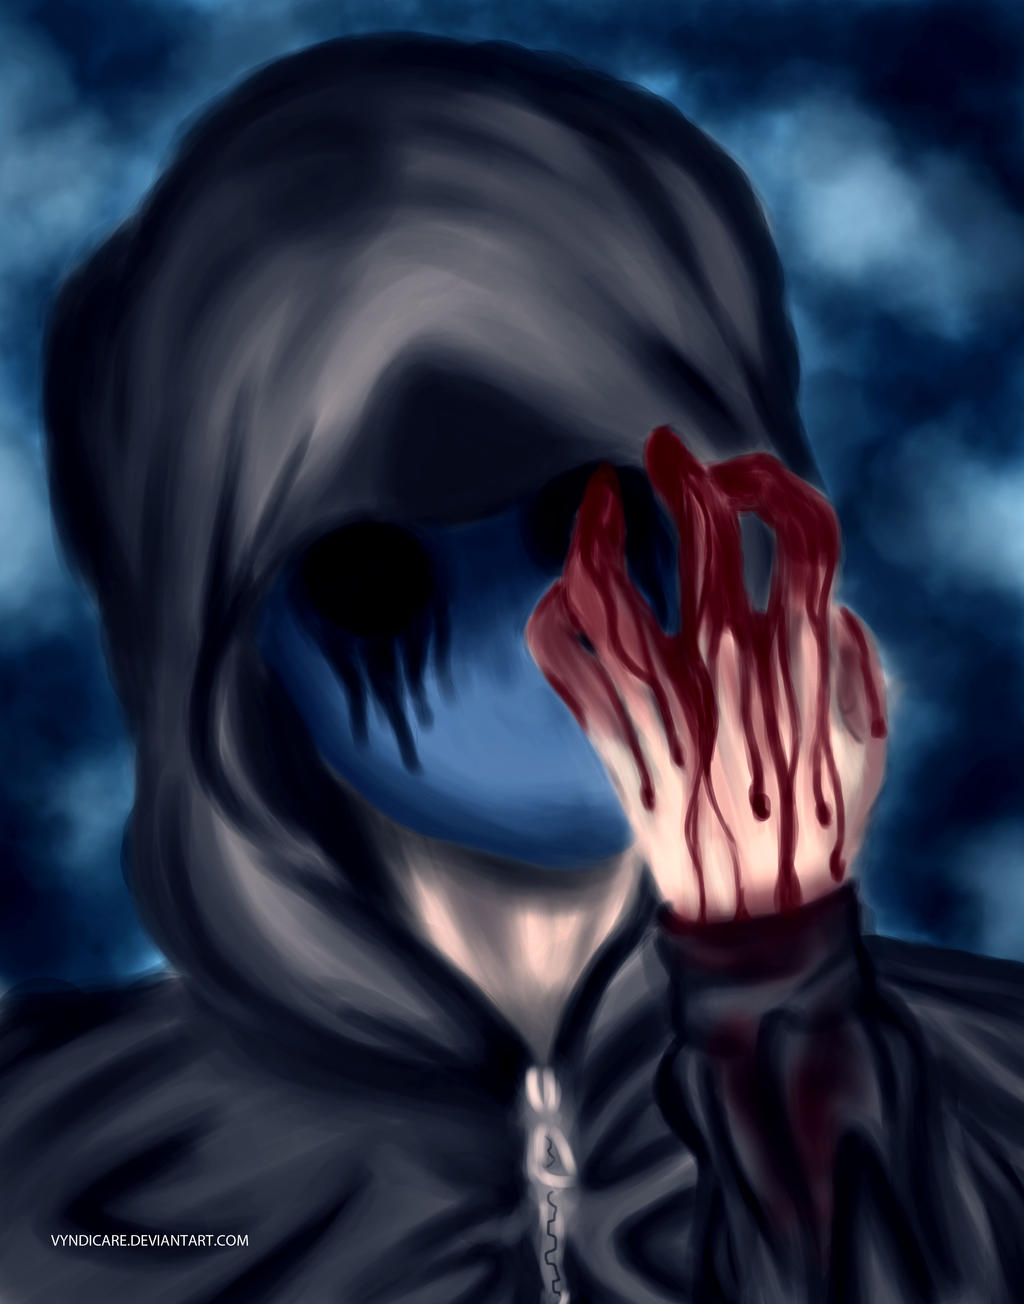 Eyeless Jack 421611852 additionally Base 070 Falling 427991440 moreover Eyeless Jack 545914837 as well How To Draw Eyes Looking Down further Iris West Allen. on drawing the human eye